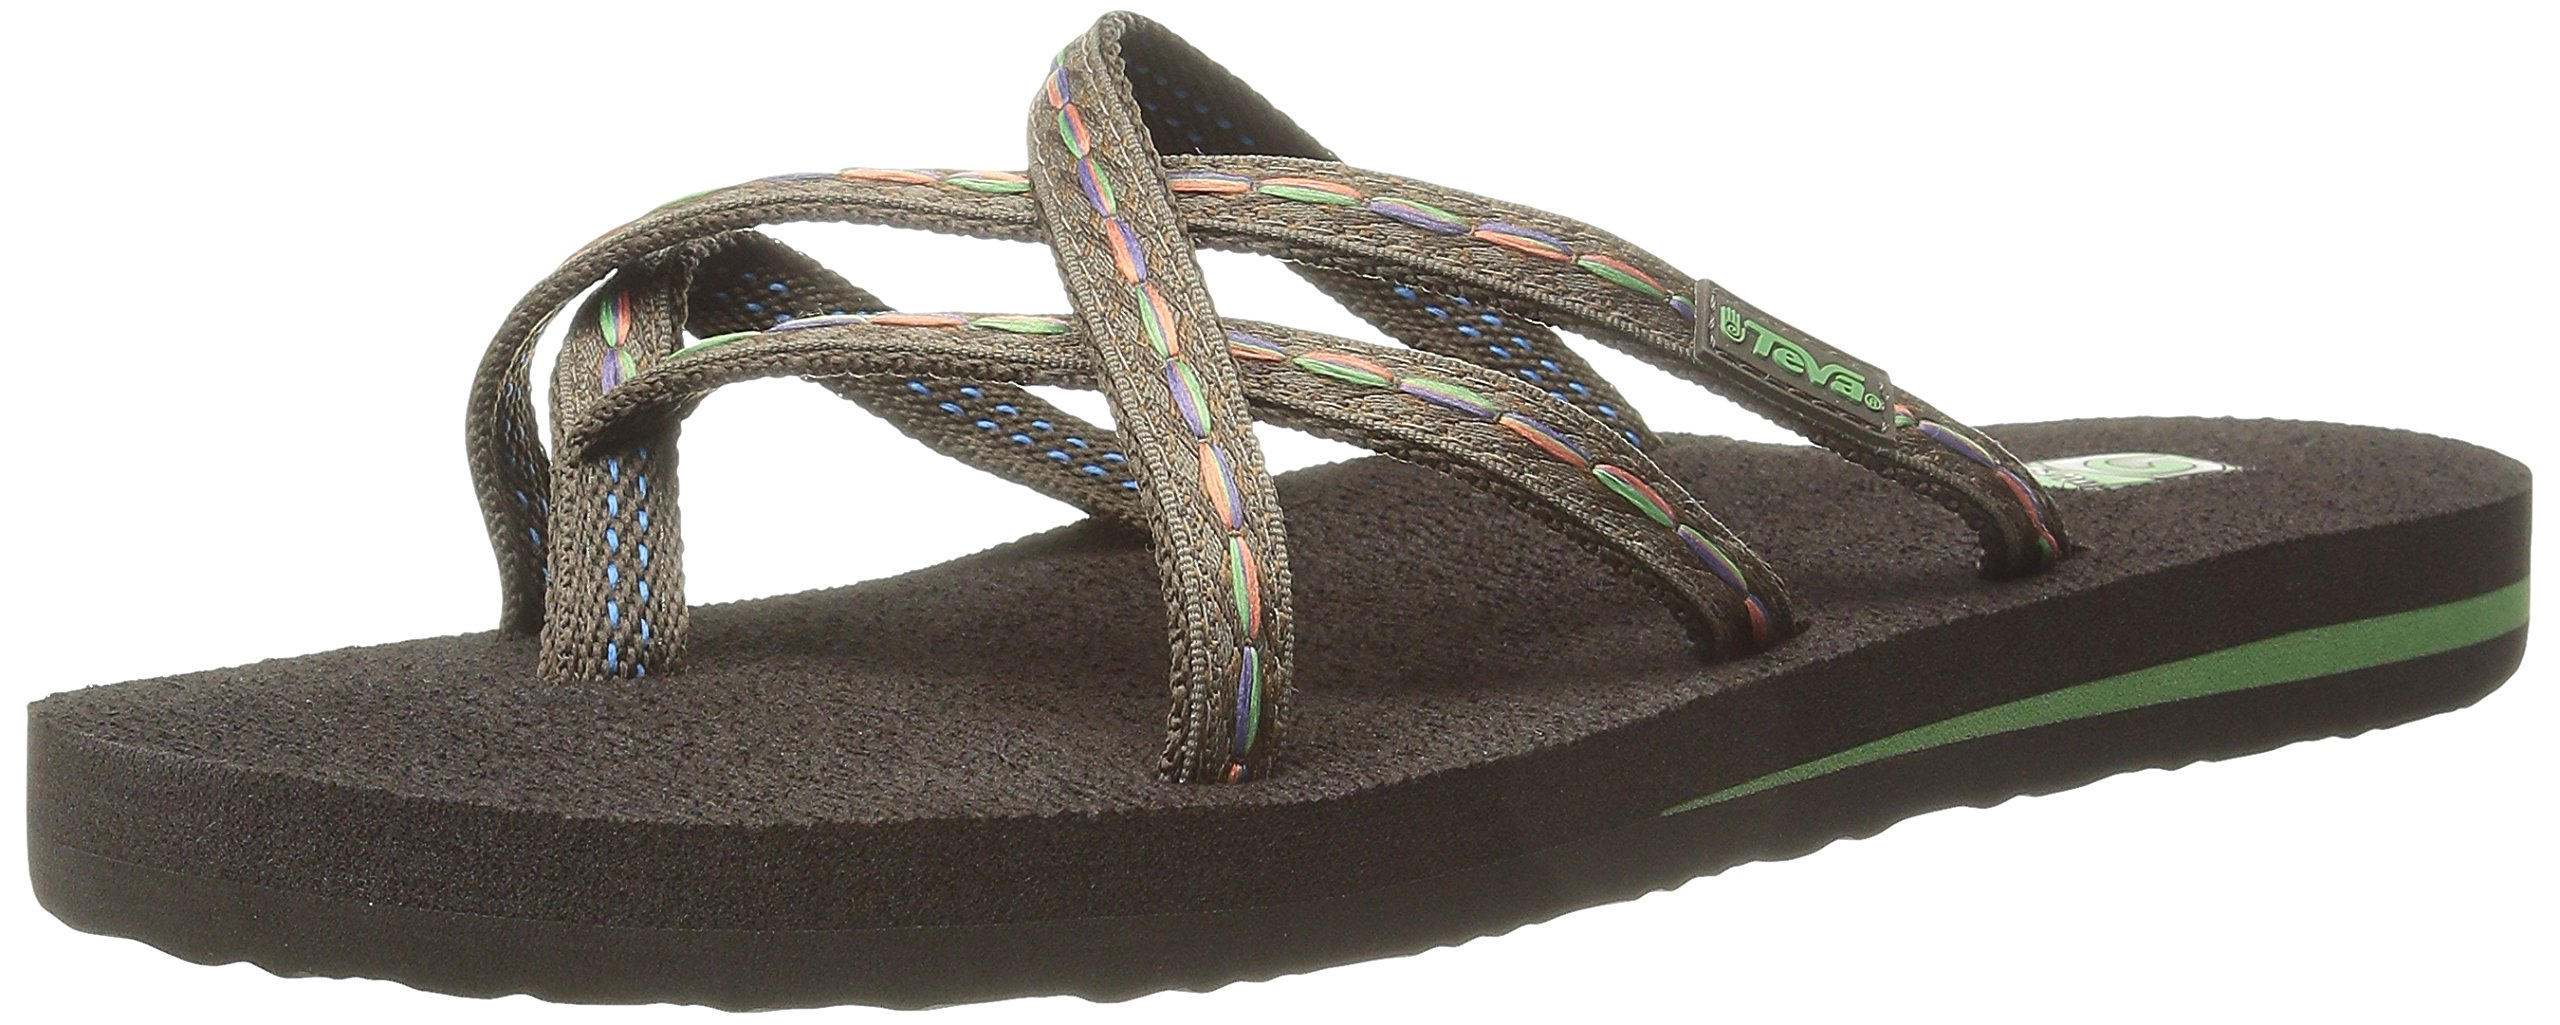 6e21f8a917b955 Galleon - Teva Women s Olowahu Flip-Flop - 8 B(M) US - Felicitas Brown